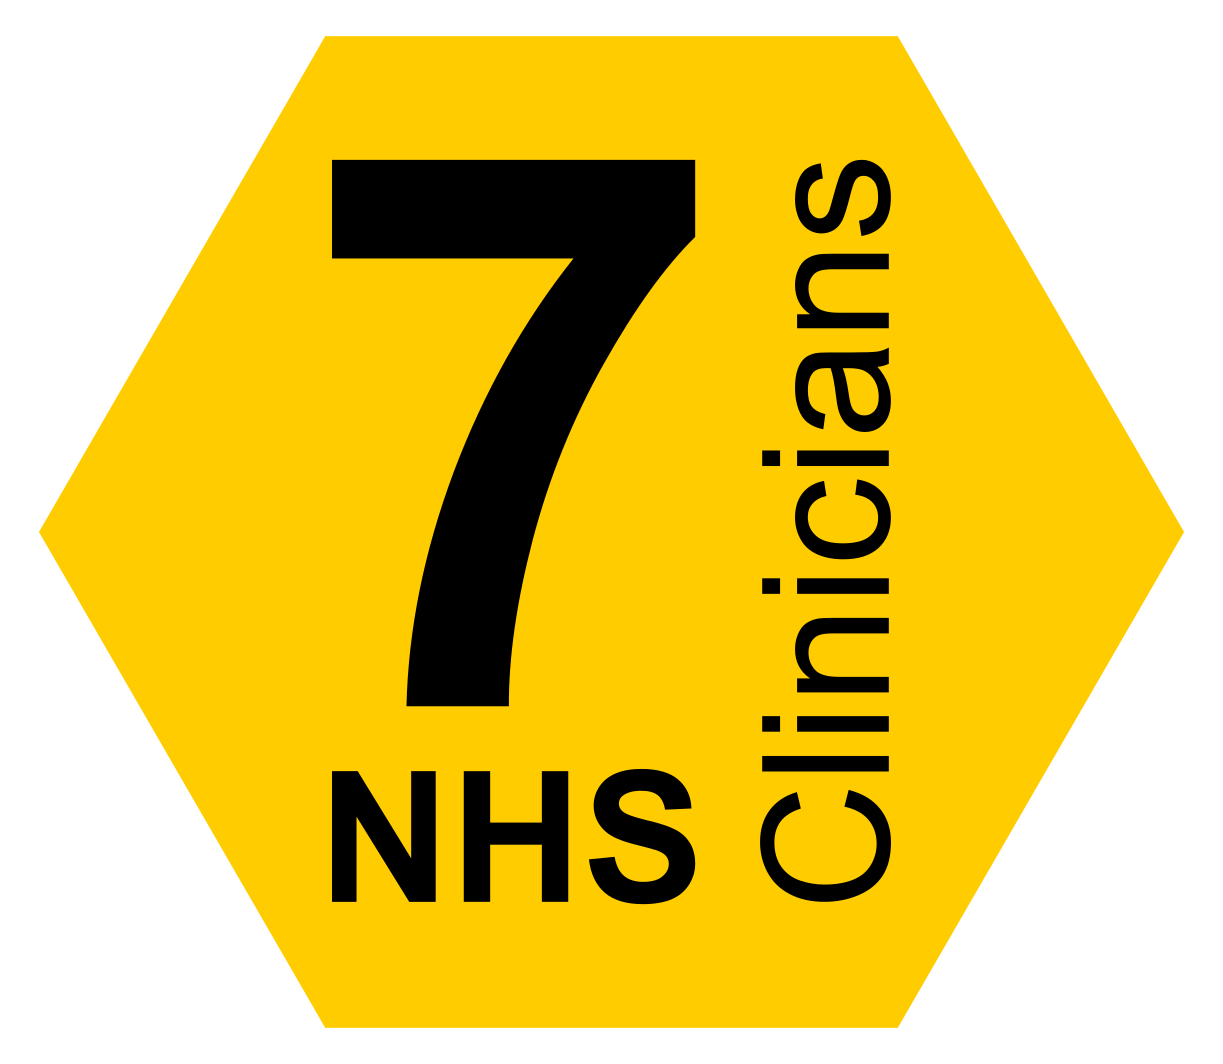 NHS Clinical Collaborator Icon - Click this icon to navigate to their section on this page.